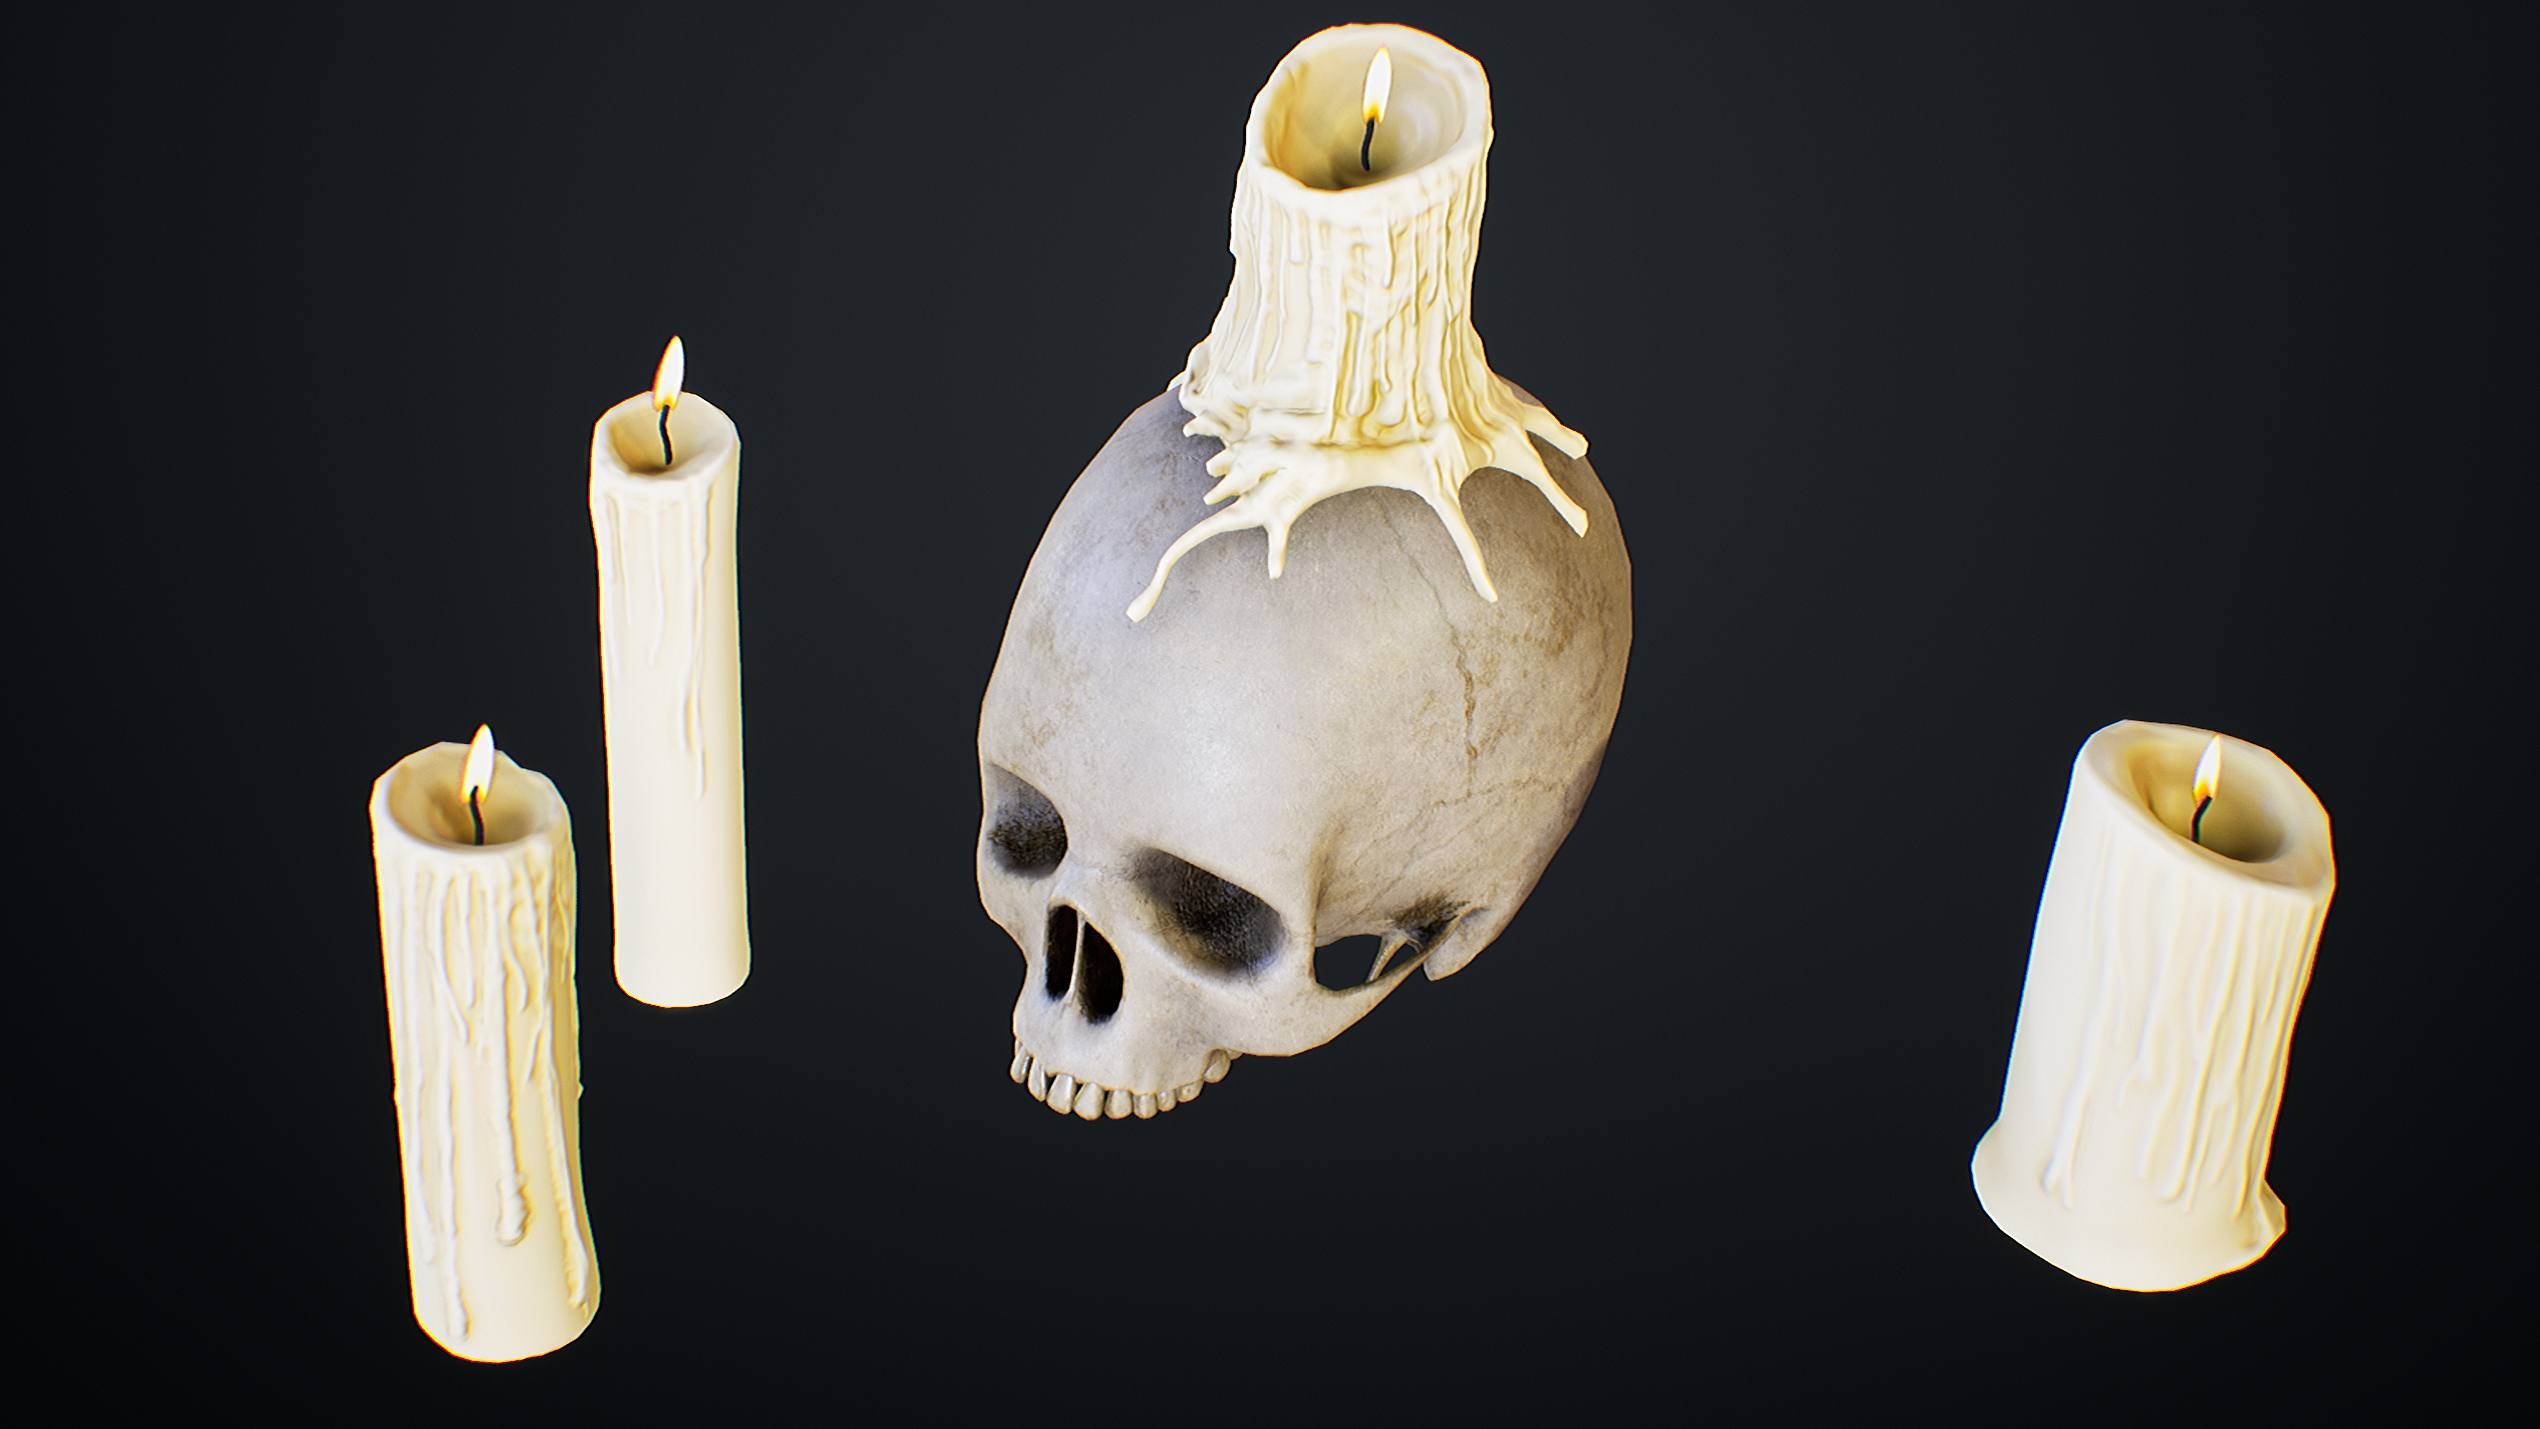 UE4 screenshot close up detailed shot of the scull and candles